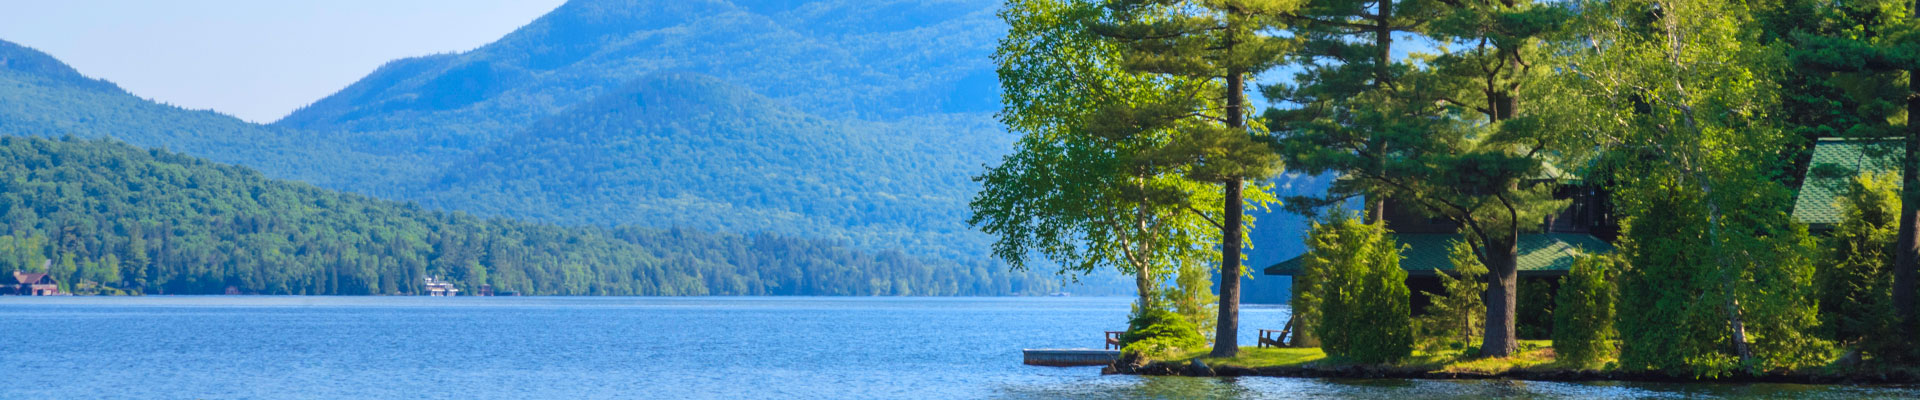 Fantasy RV Tours: 24 Day NY Adirondacks,Lakes and Waterfalls (24UNYF-081121)